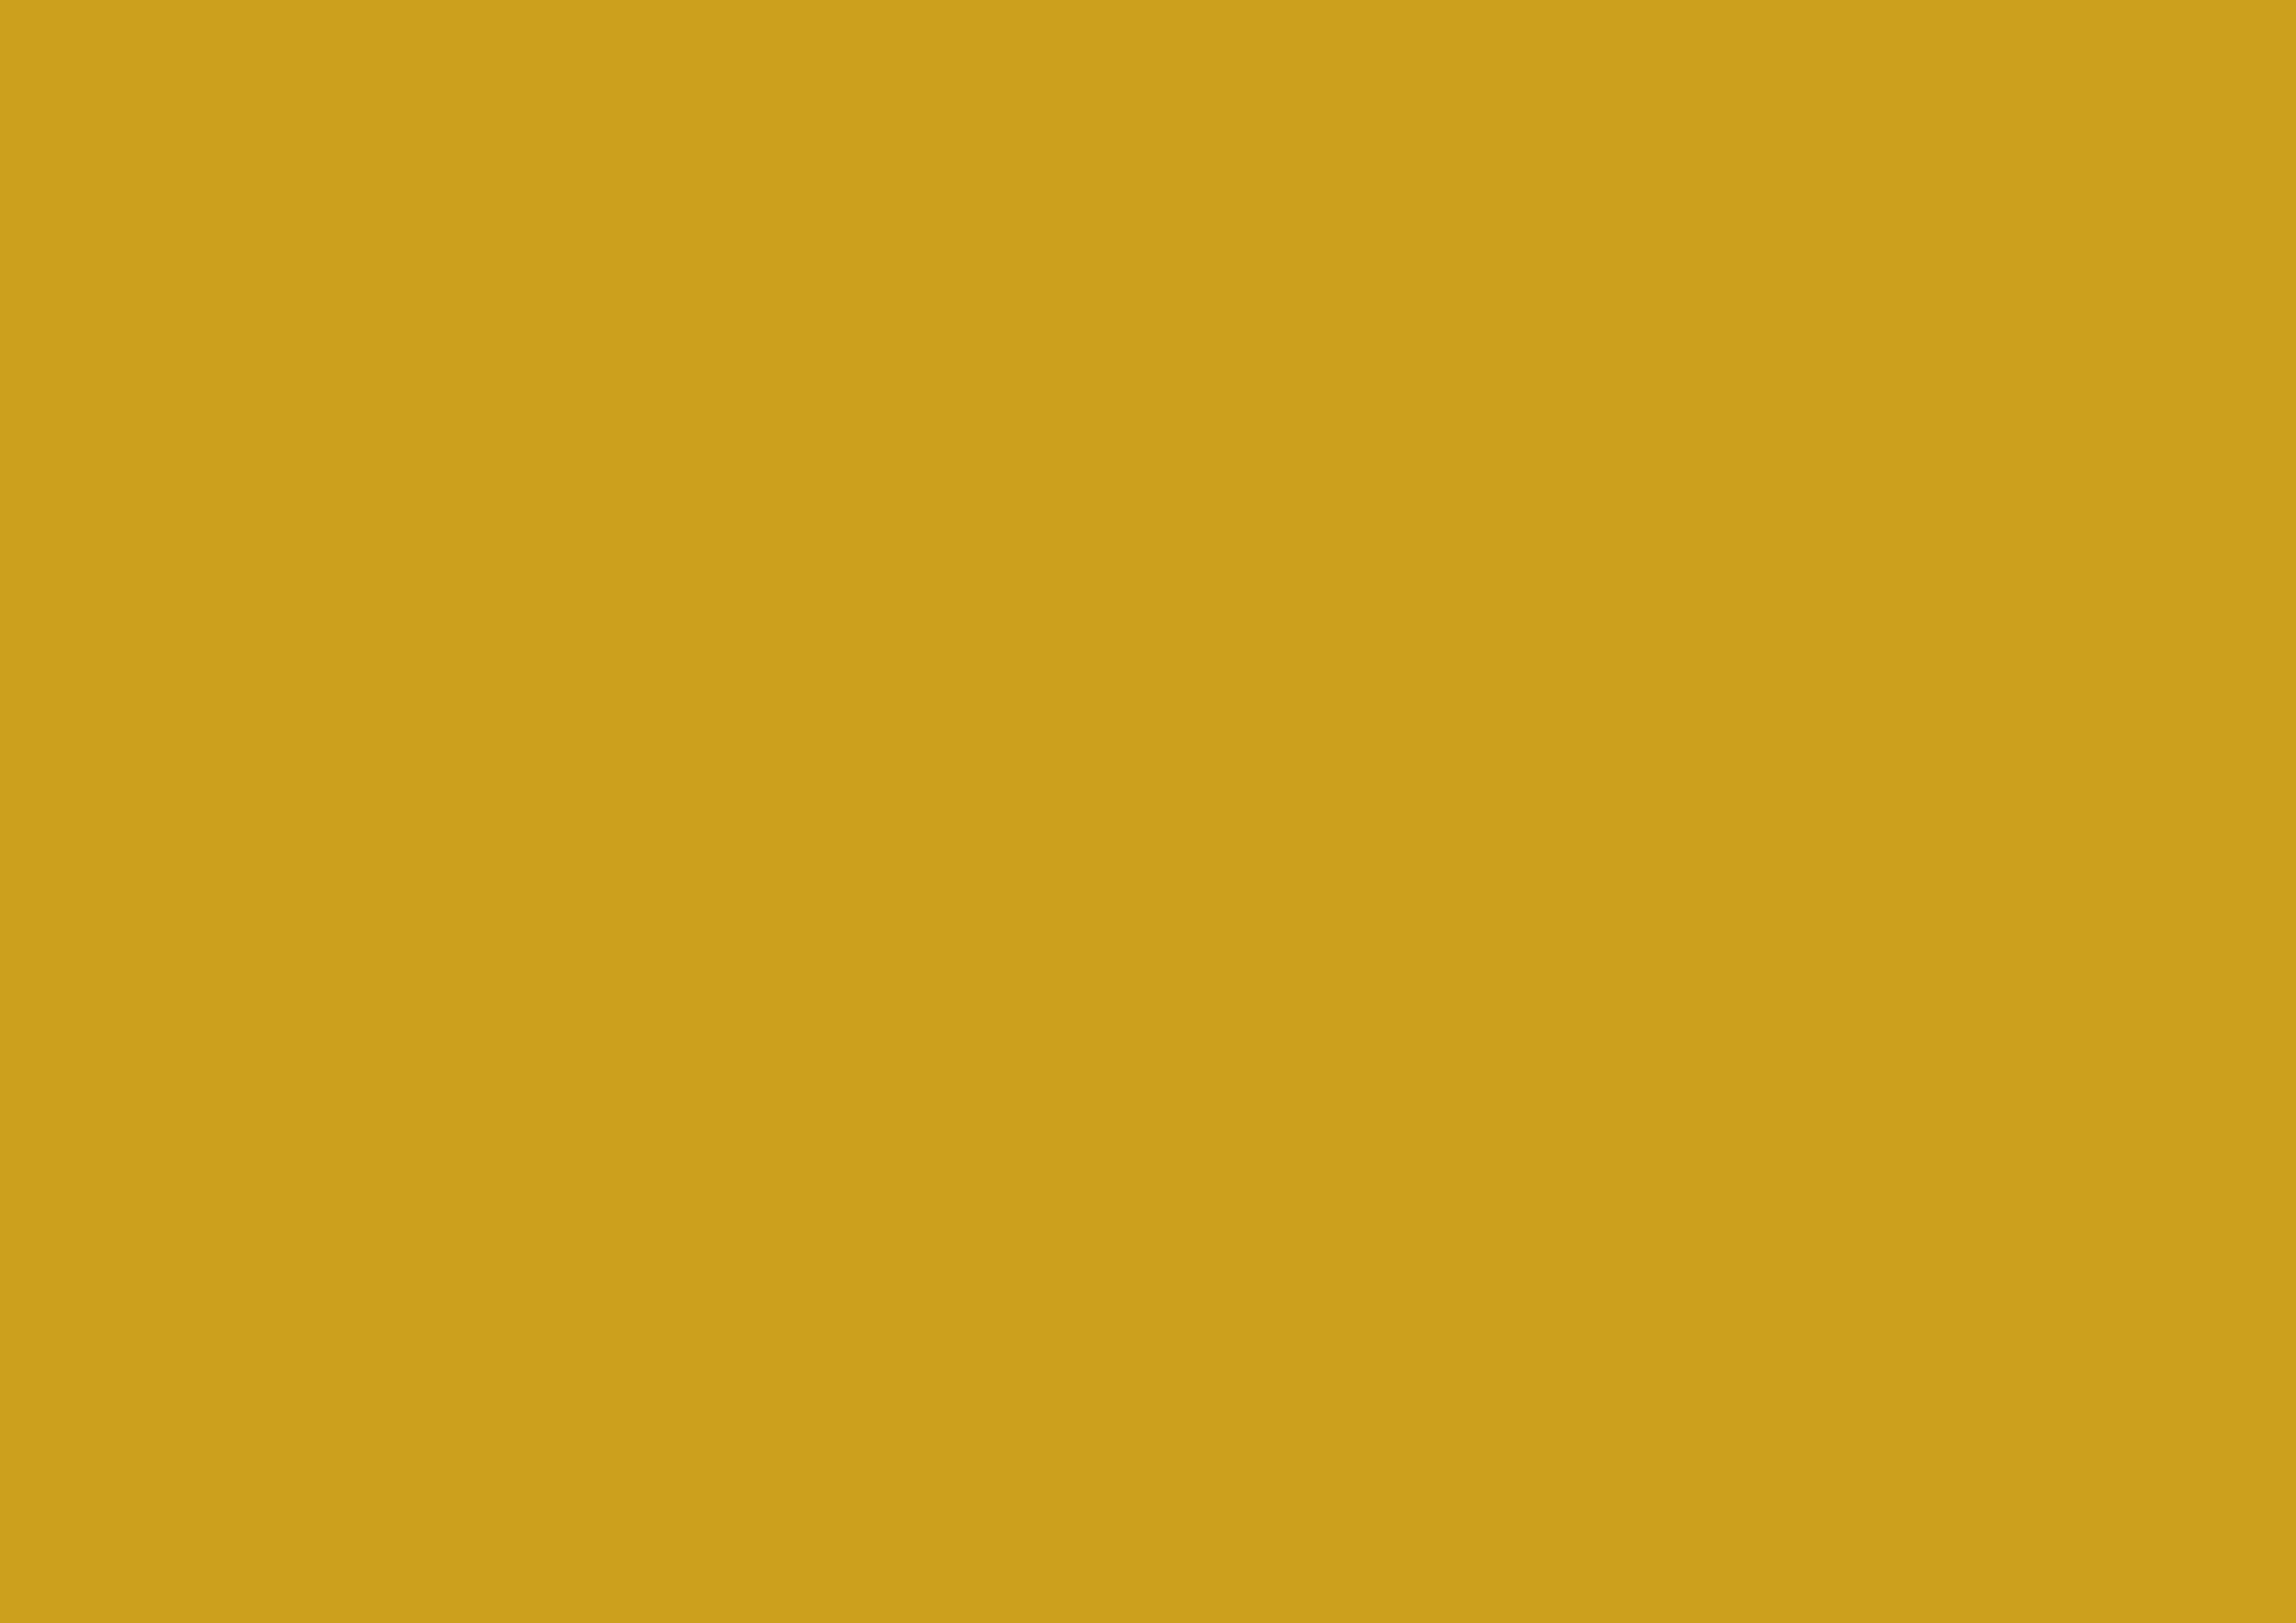 3508x2480 Lemon Curry Solid Color Background